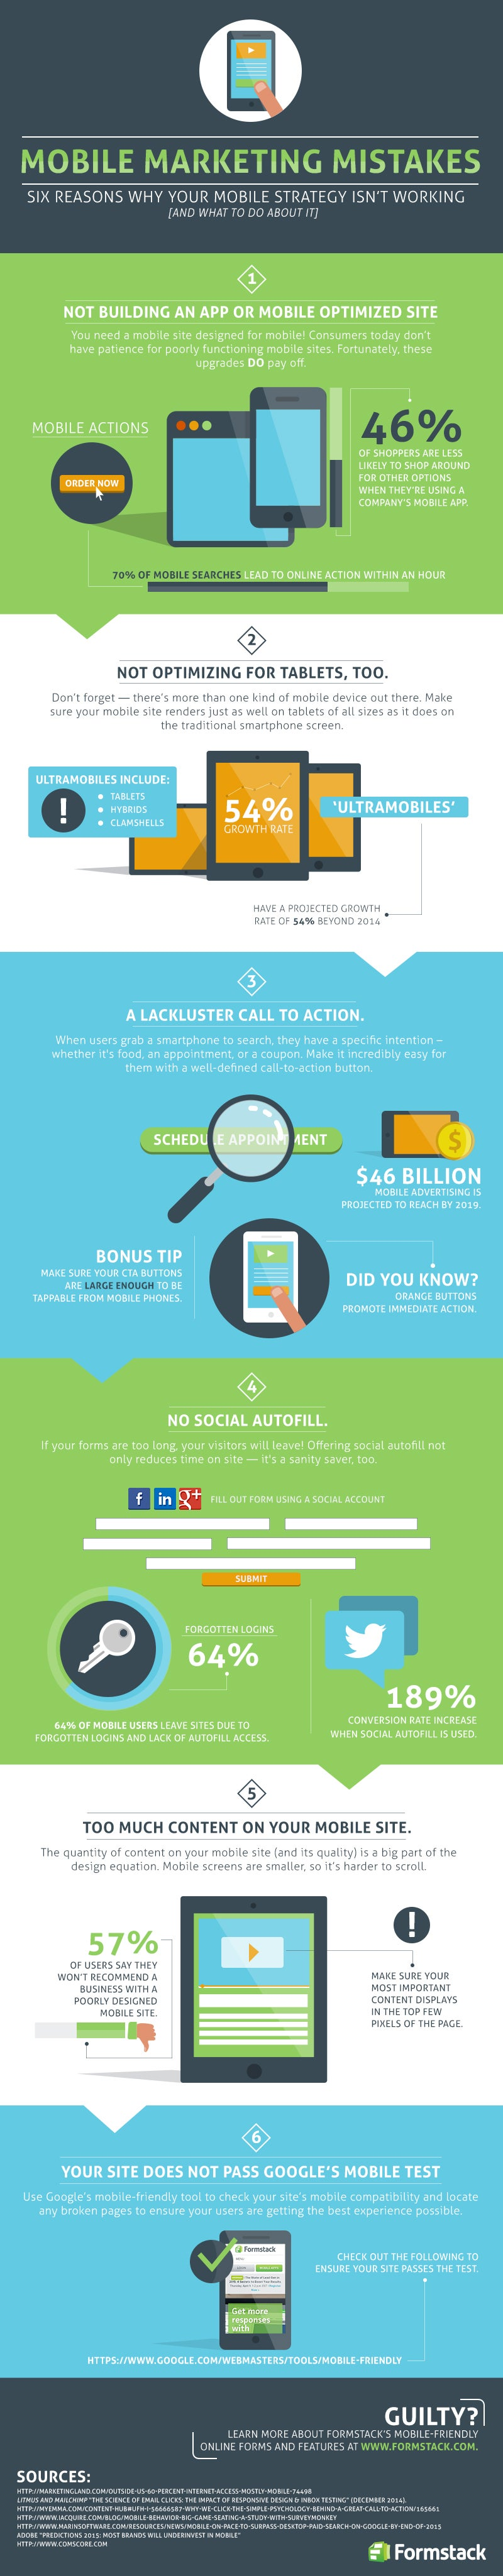 5 Crisis-Mode Moves to Save Your Google Ranking (Infographic)